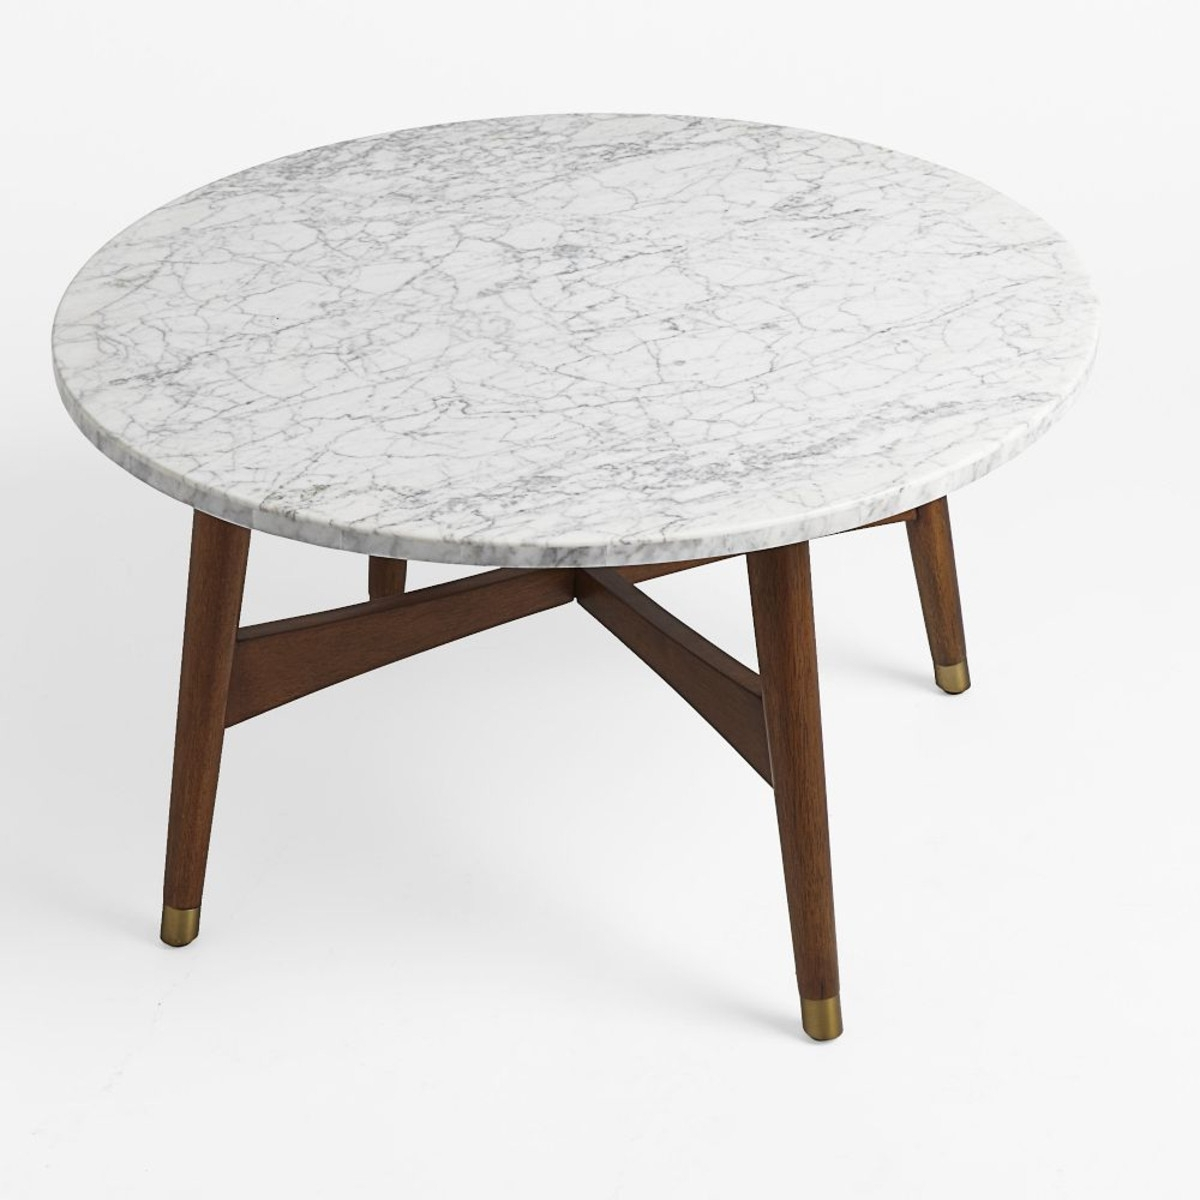 Decoration In Marble Round Coffee Table With Coffee Table Smart Intended For Well Liked Smart Large Round Marble Top Coffee Tables (View 5 of 20)